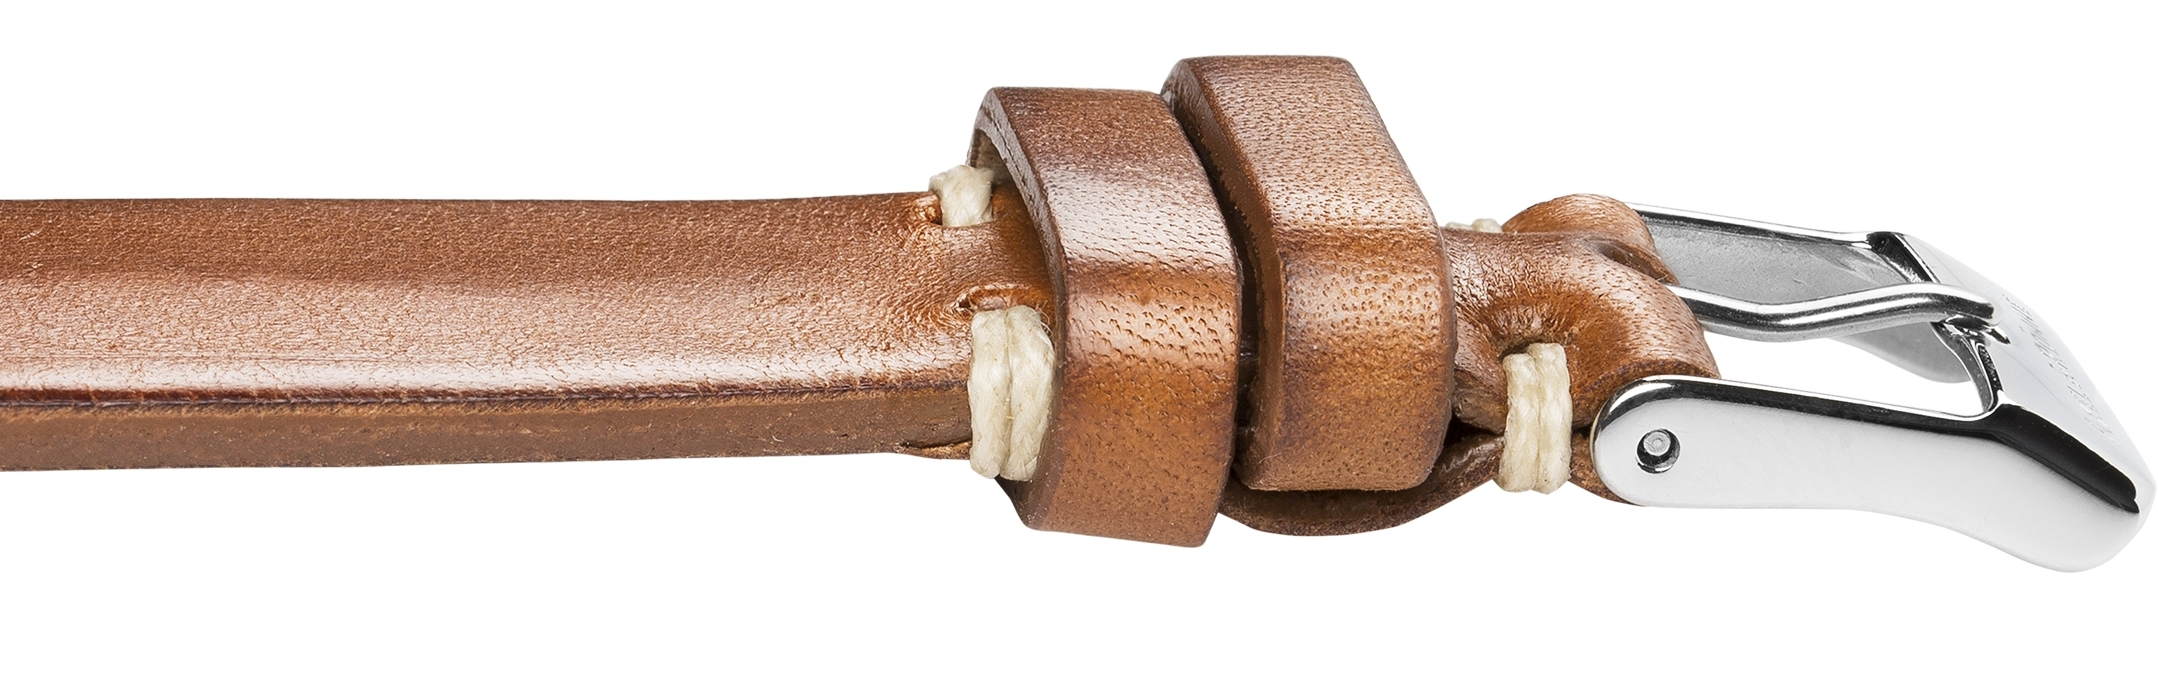 Organically tanned cognac leather straps